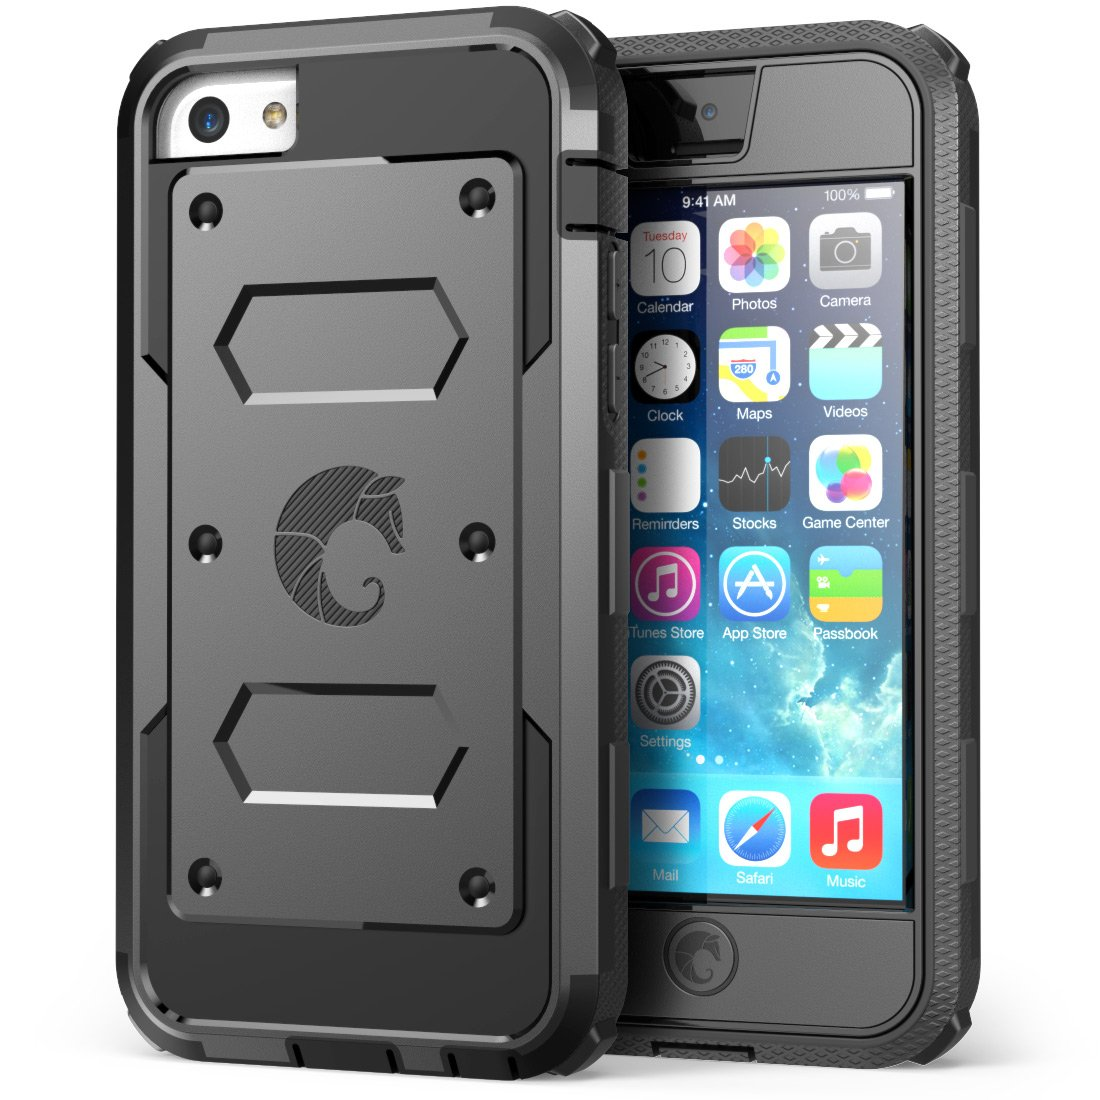 iphone 5c case i blason armorbox for apple iphone 5c dual. Black Bedroom Furniture Sets. Home Design Ideas